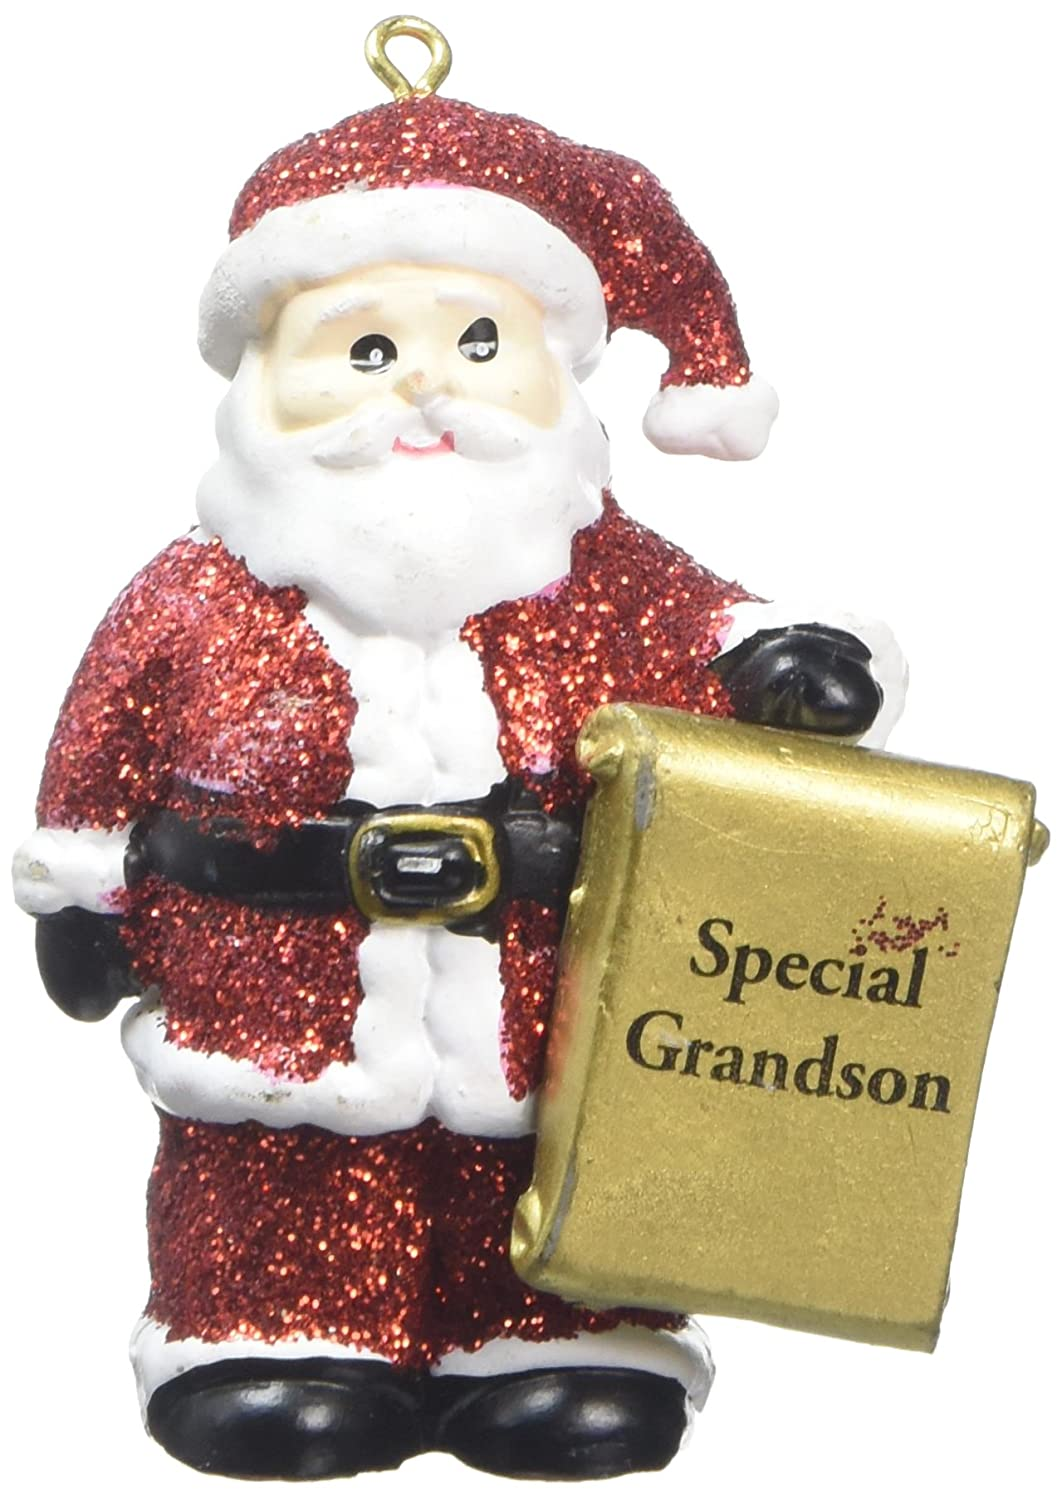 SPECIAL GRANDSON Snowman Blue Glittered Christmas Tree Decoration